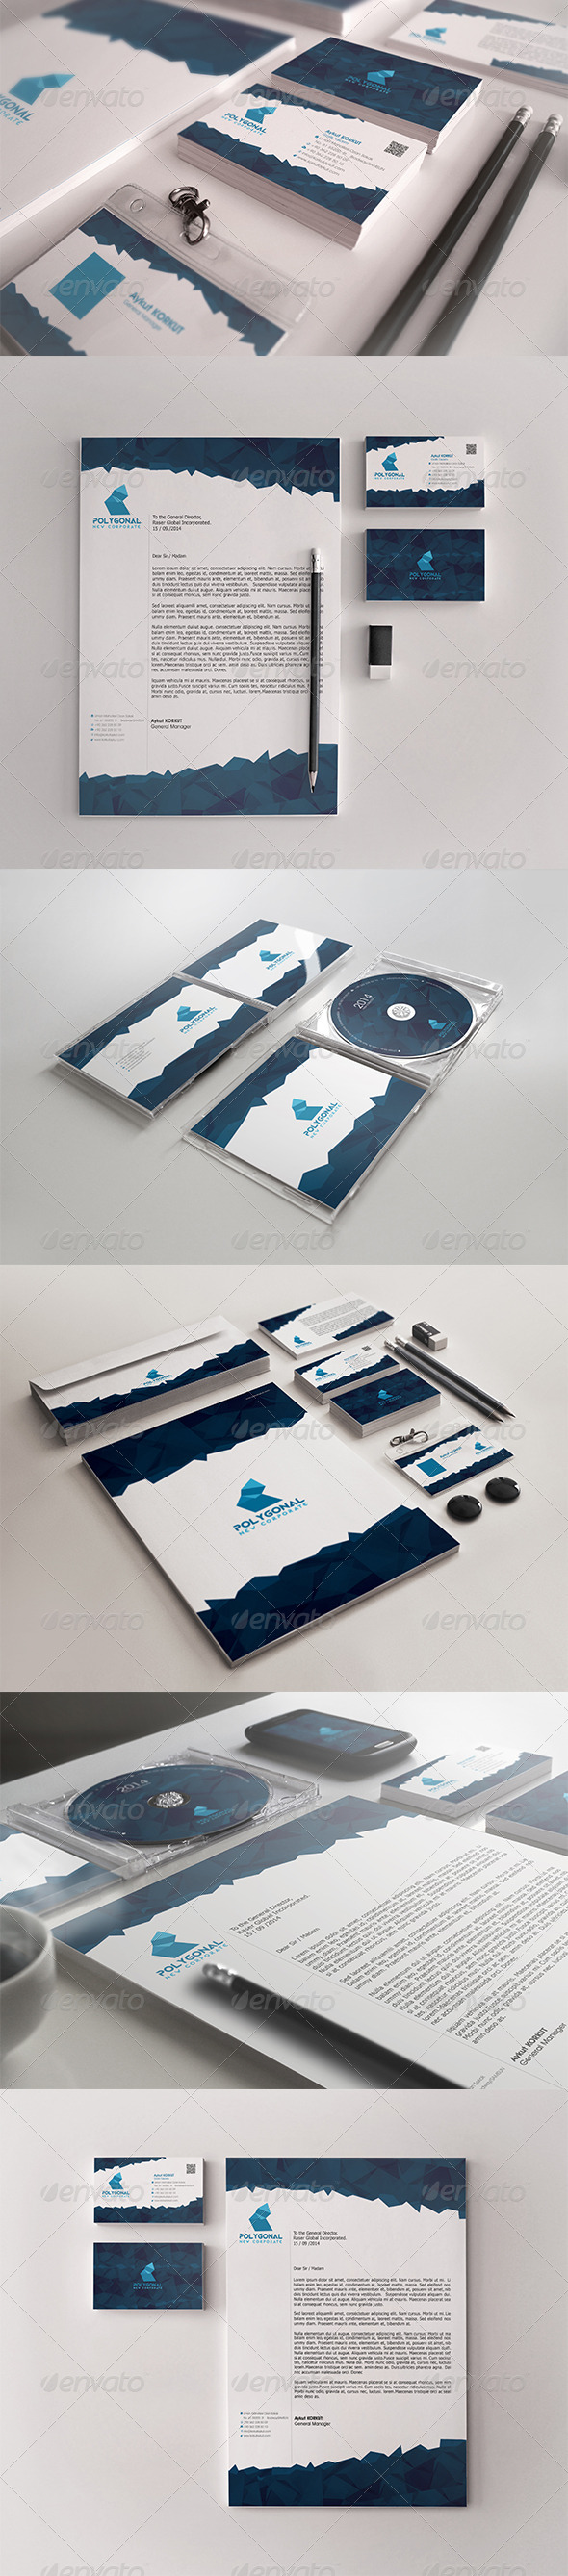 GraphicRiver Polygonal Corporate Identity Package 7850708